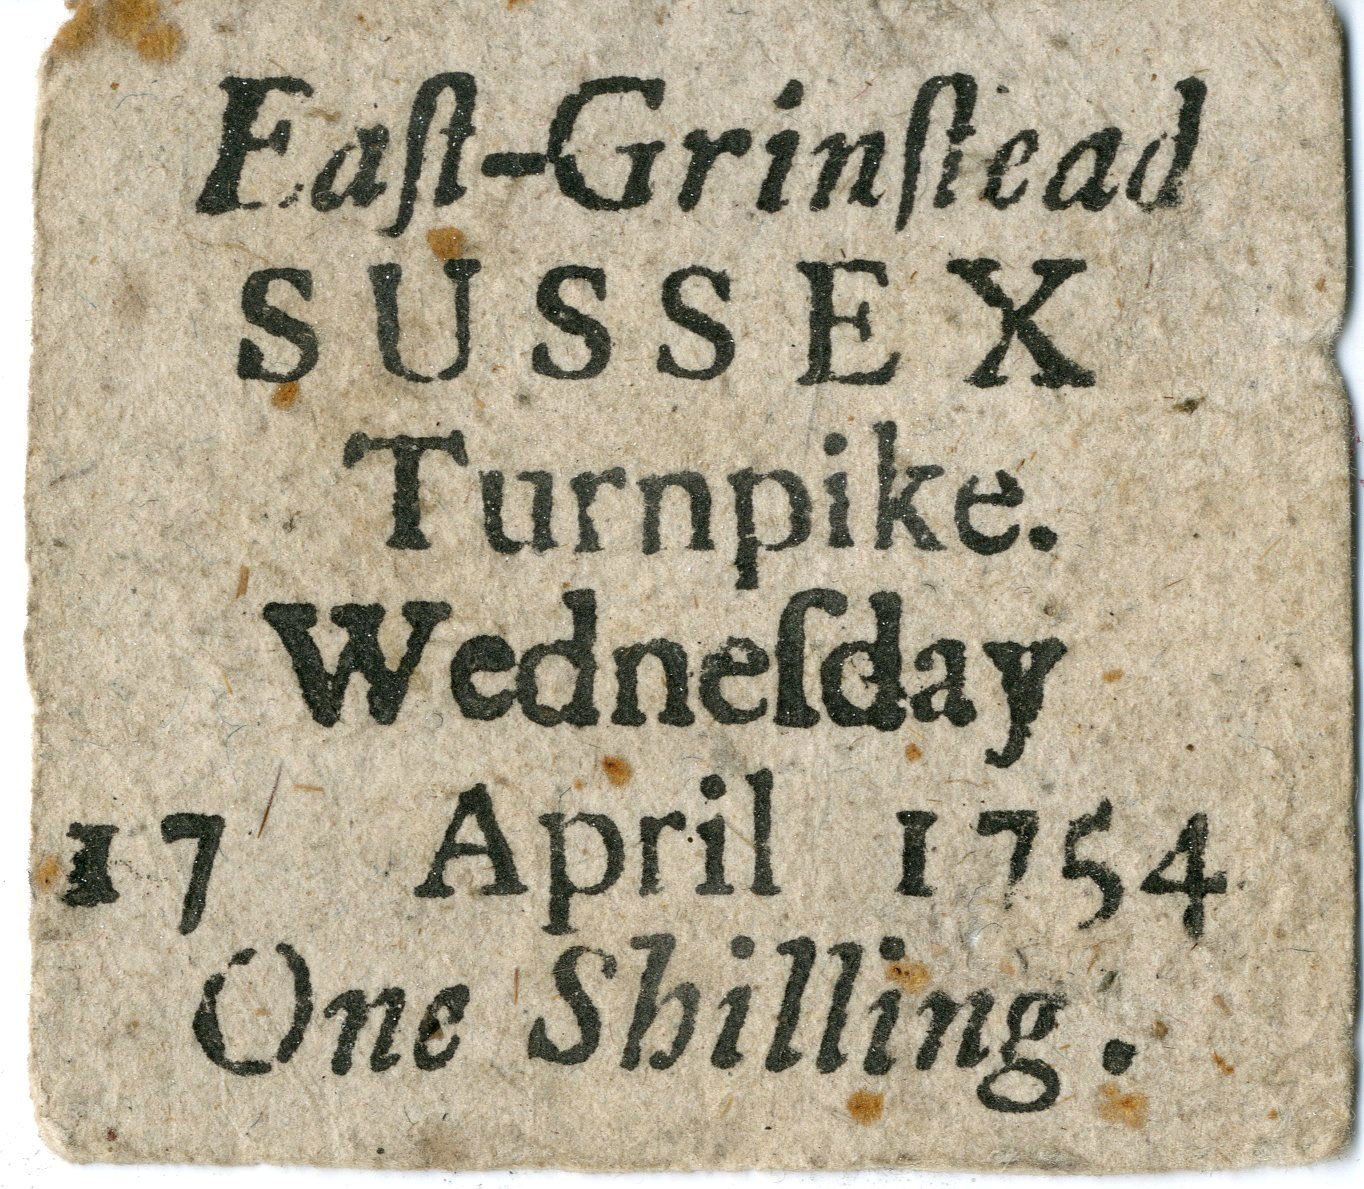 East Grinstead Museum – East Grinstead. SUSSEX. Turnpike. Wednesday. 17 April 1754. One Shilling